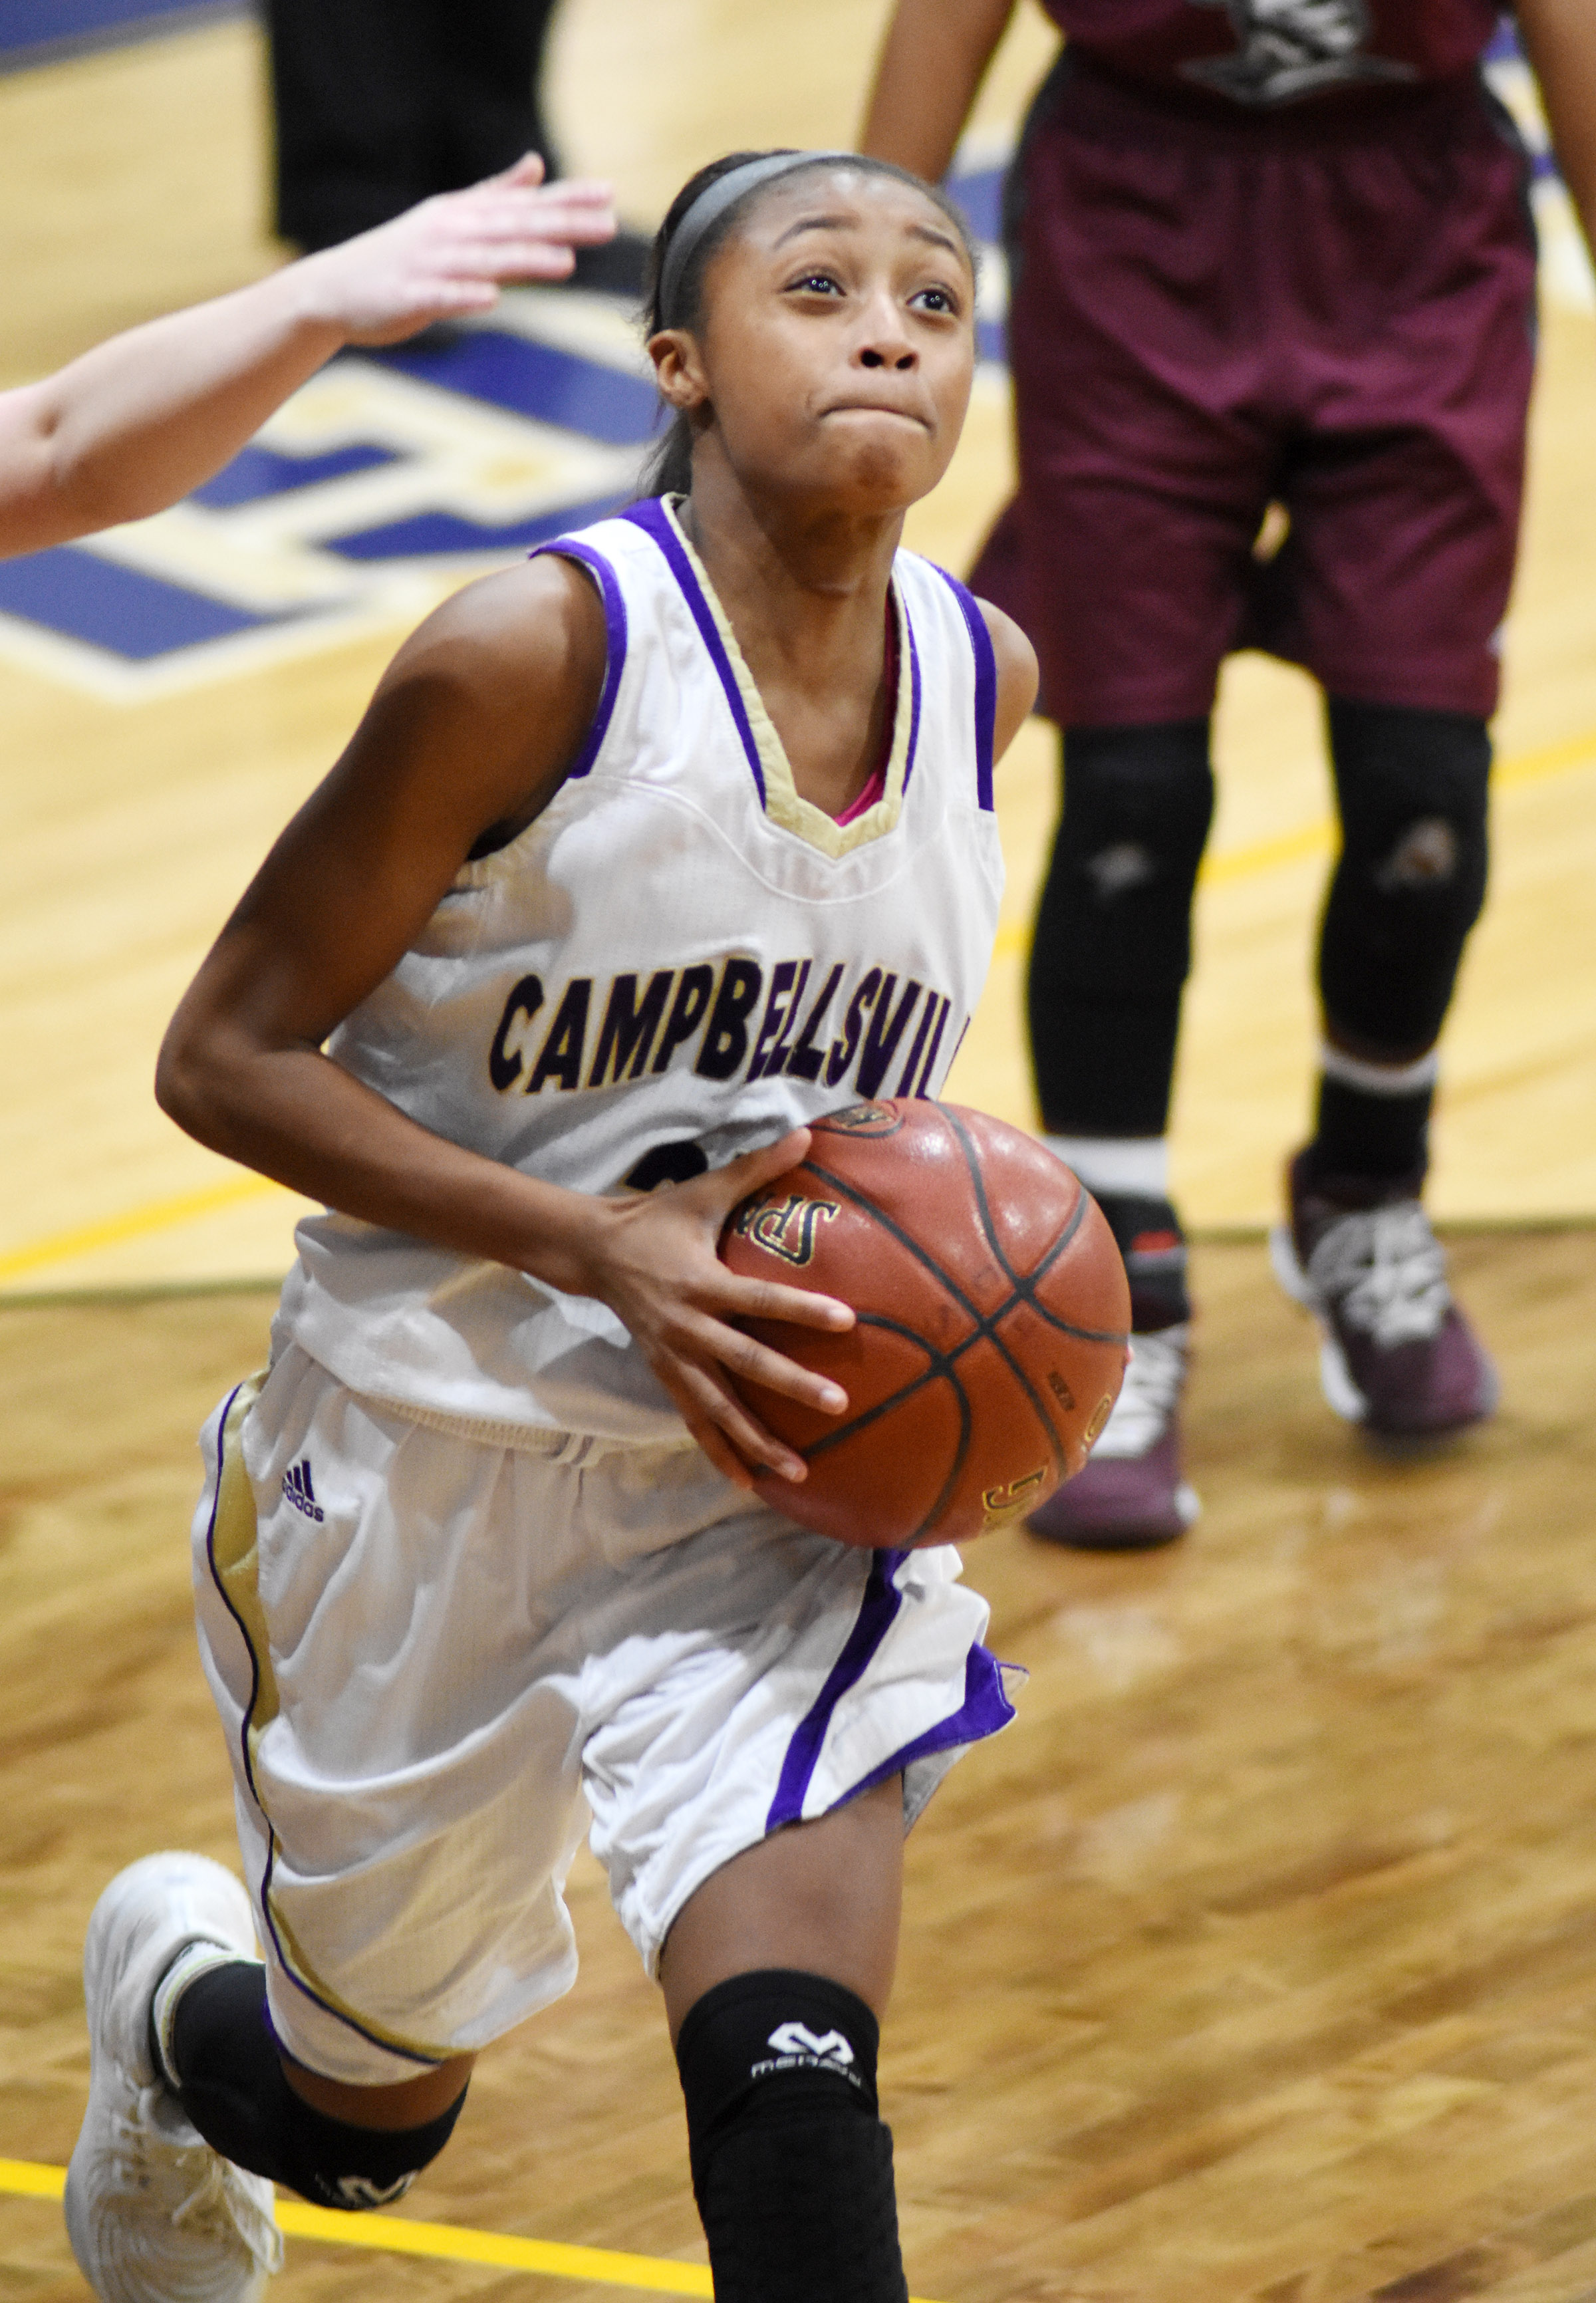 Campbellsville Middle School eighth-grader Bri Gowdy scores two points.